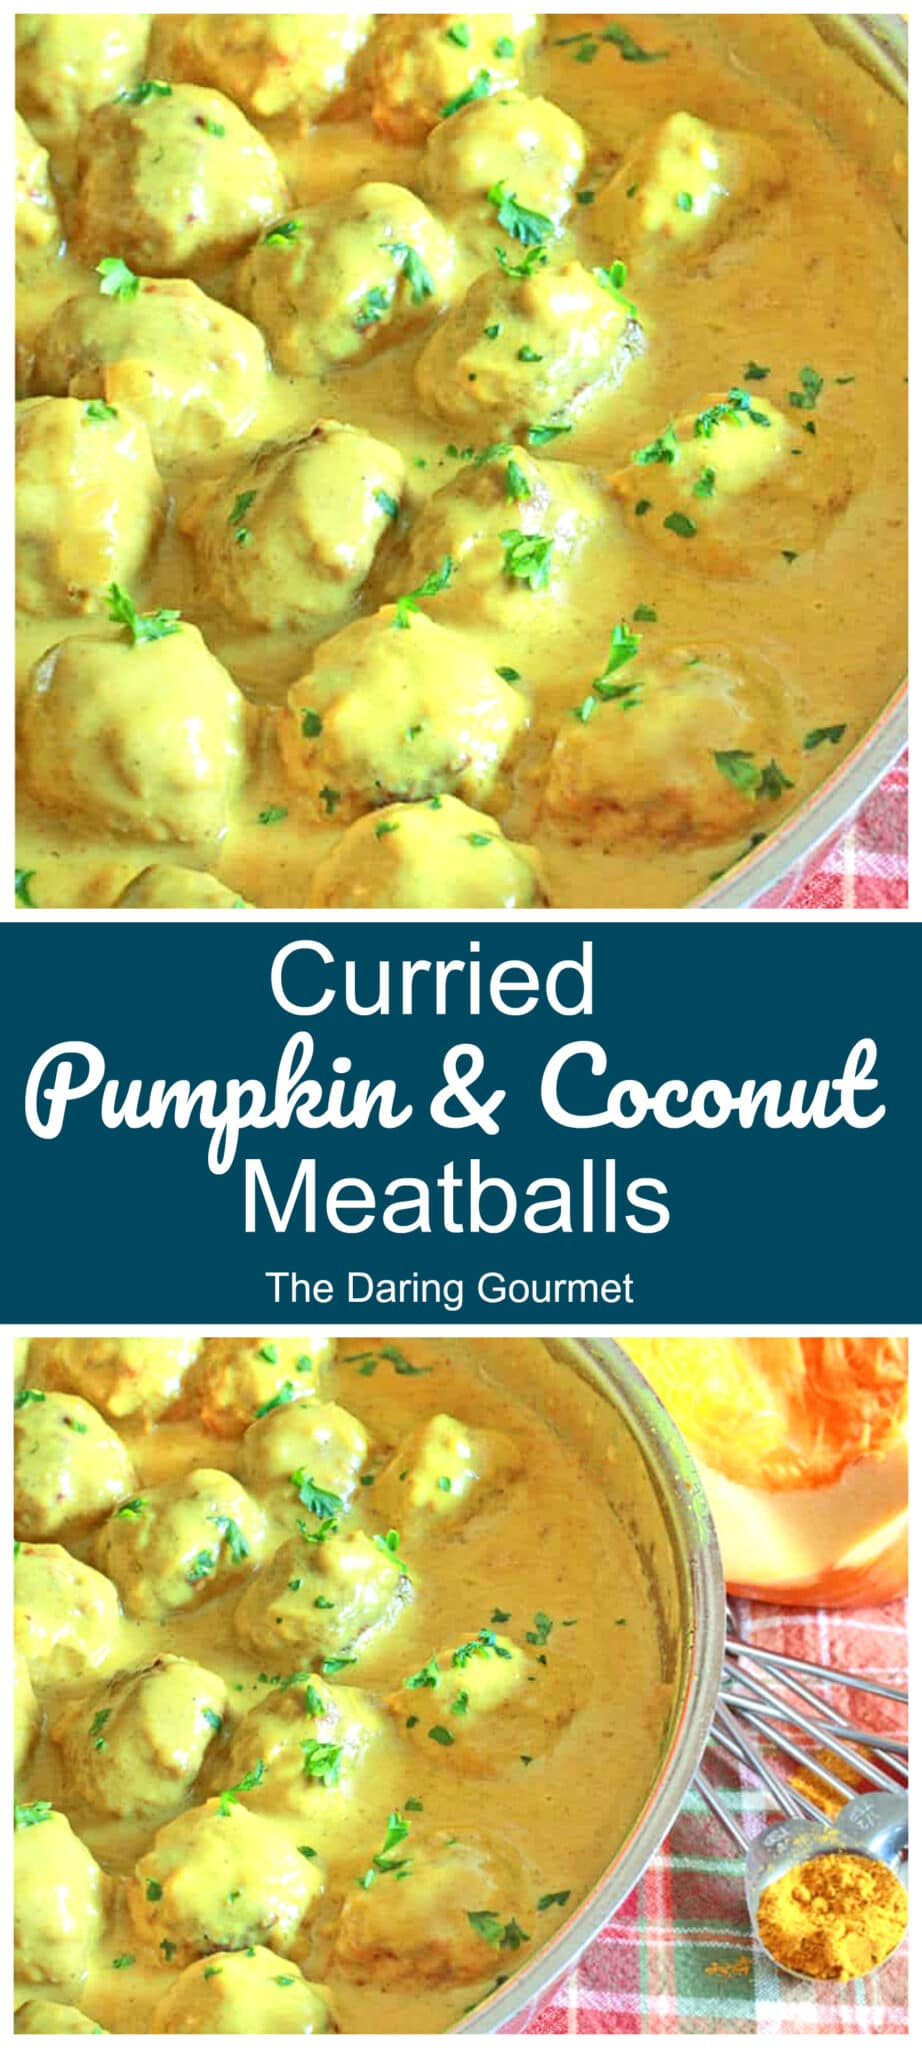 pumpkin meatballs recipe curried coconut